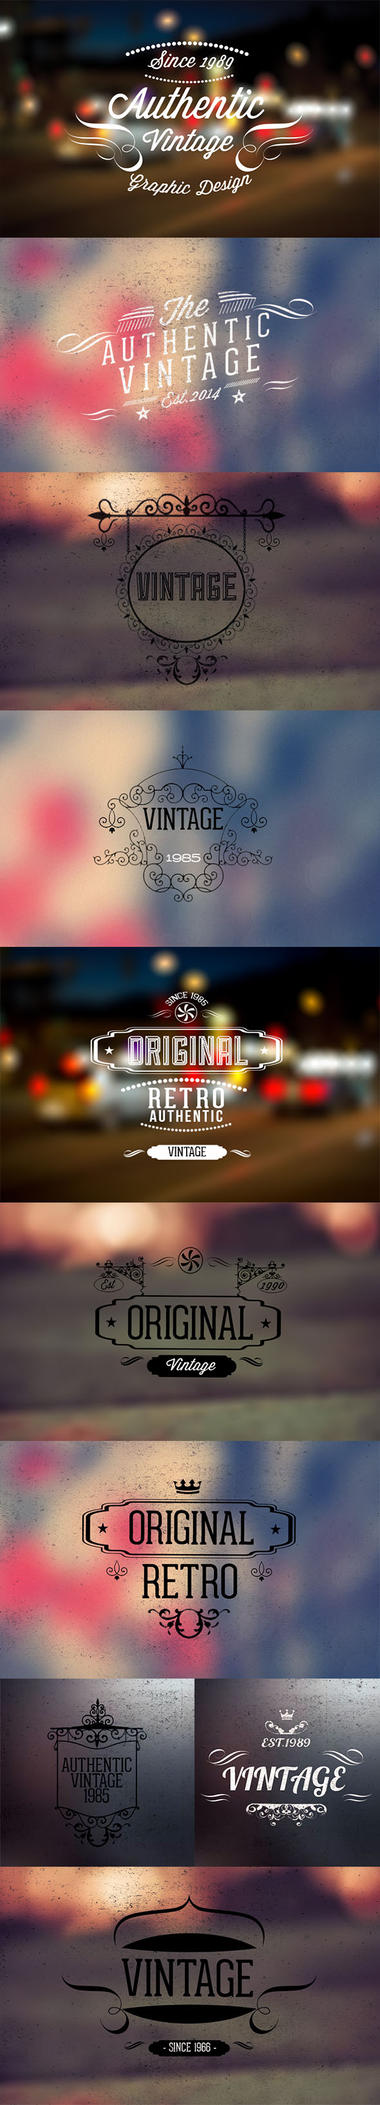 10 Vintage retro labels PSD file V2 free Version by kadayoub